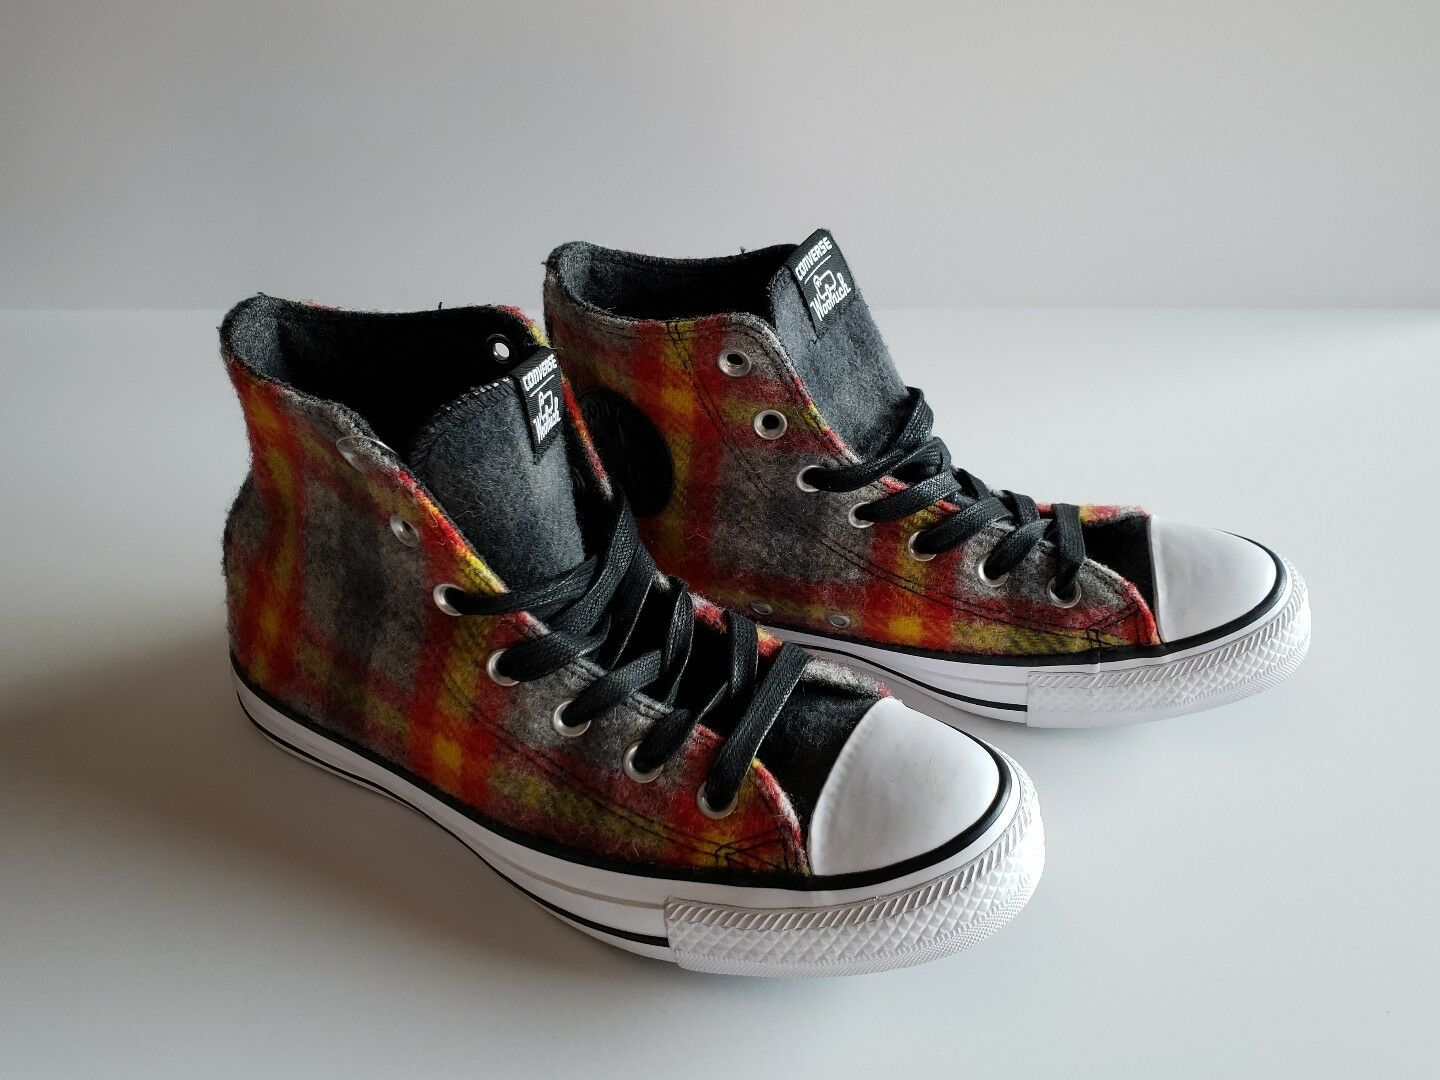 CONVERSE YELLOW CHUCK TAYLOR ALL STAR WOOLRICH 6 GREY RED YELLOW CONVERSE PLAID CT HI 149456C 0145f5